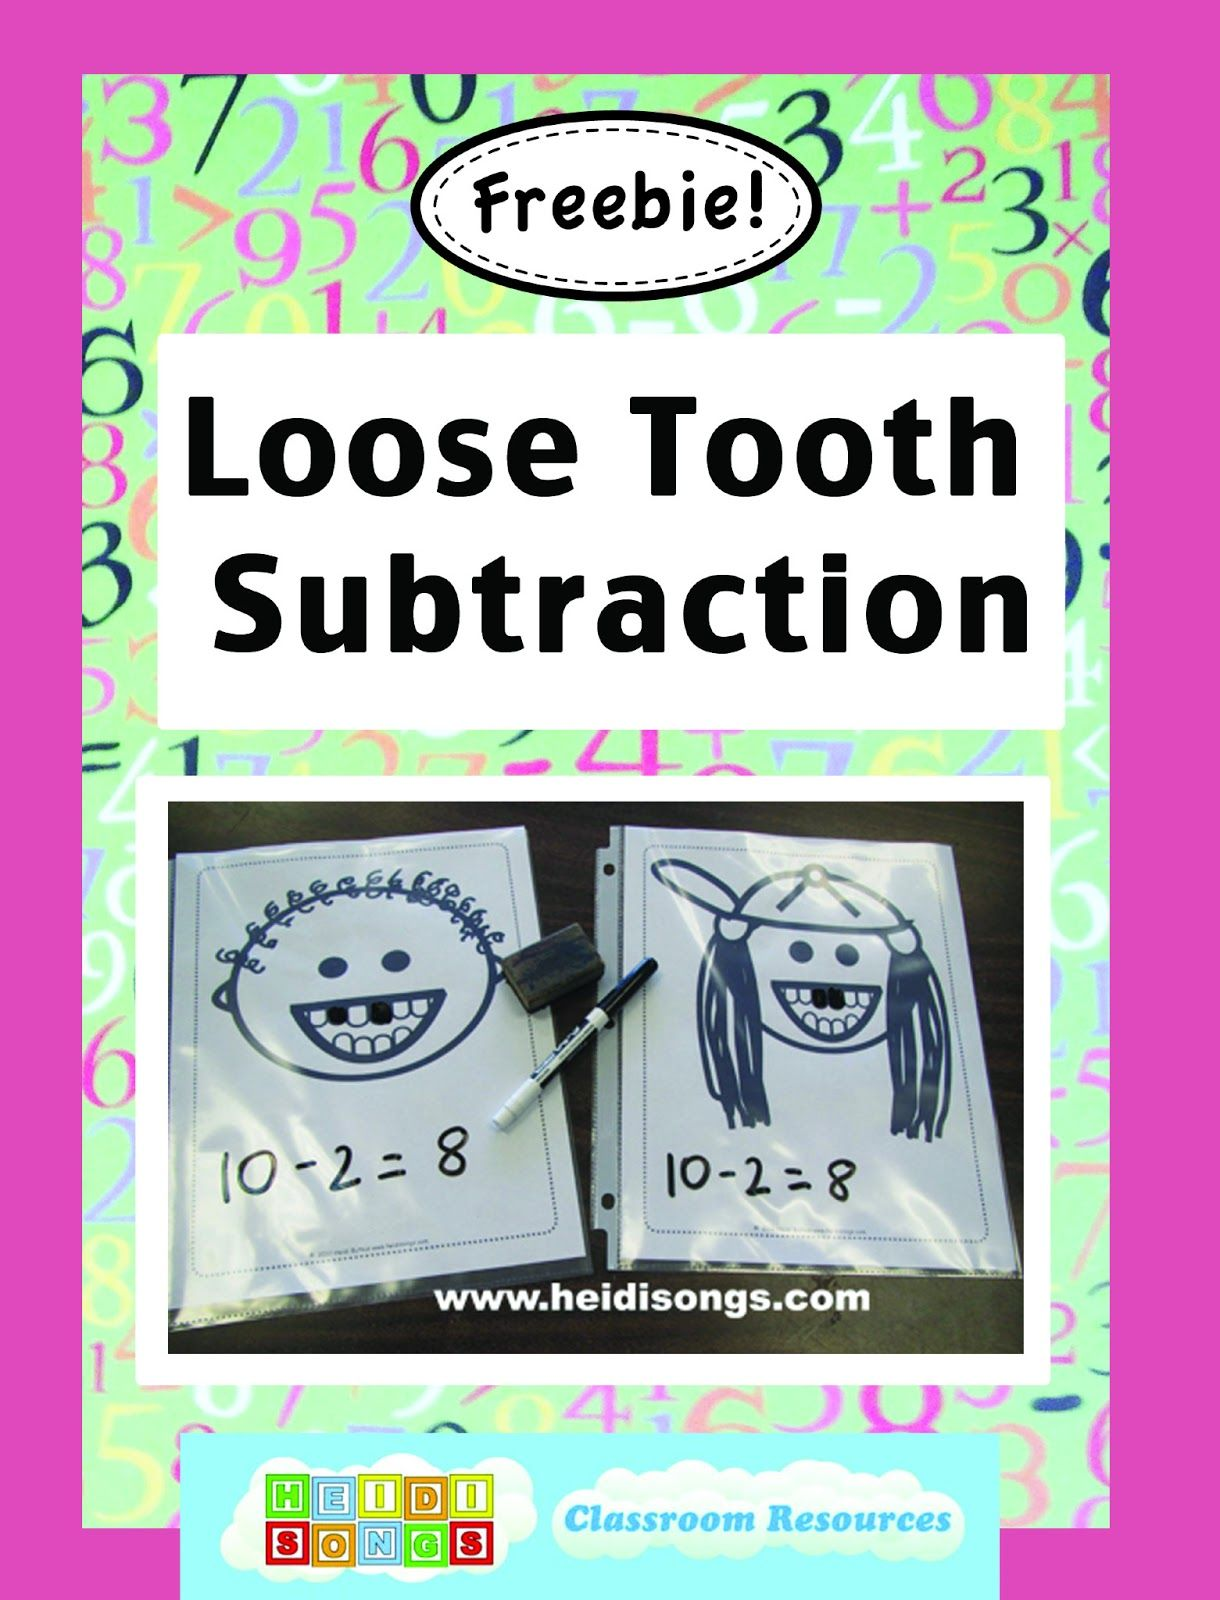 Loose Tooth Subtraction!   Teaching Stuff   Pinterest   Loose tooth ...